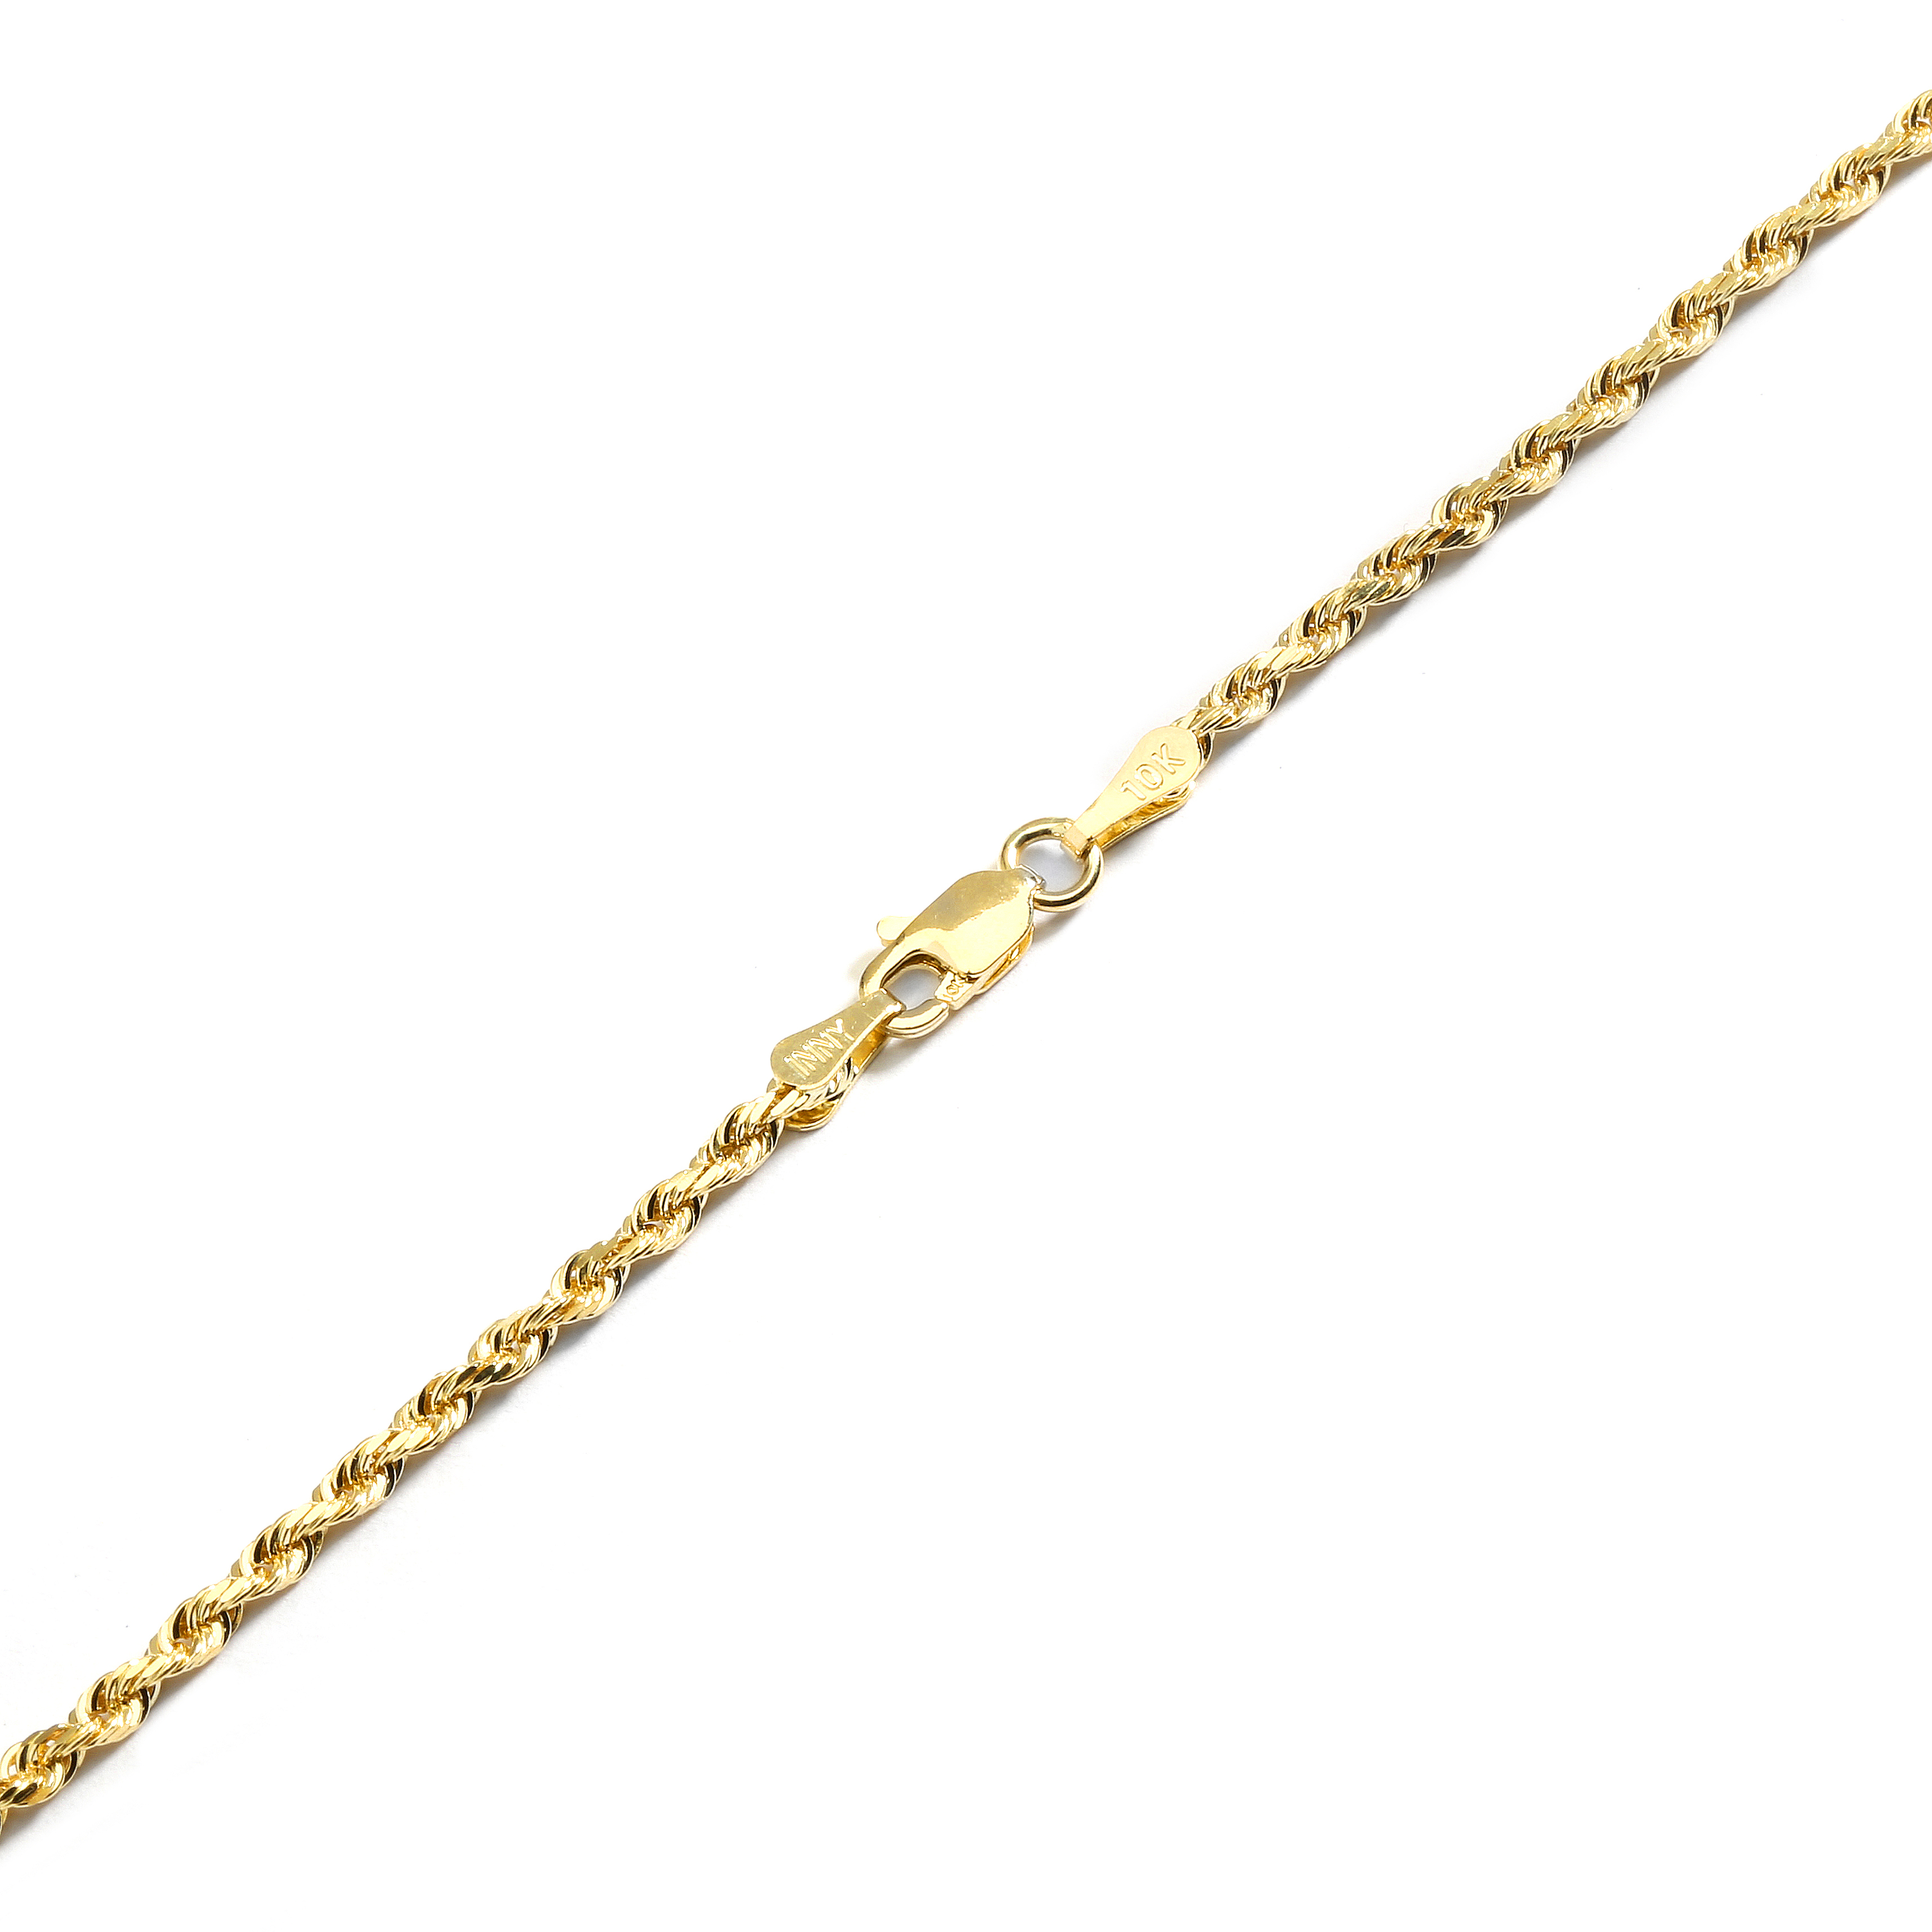 products anklet april retusche chain anchor pearl gold jewelry june anklets nives von bead fine